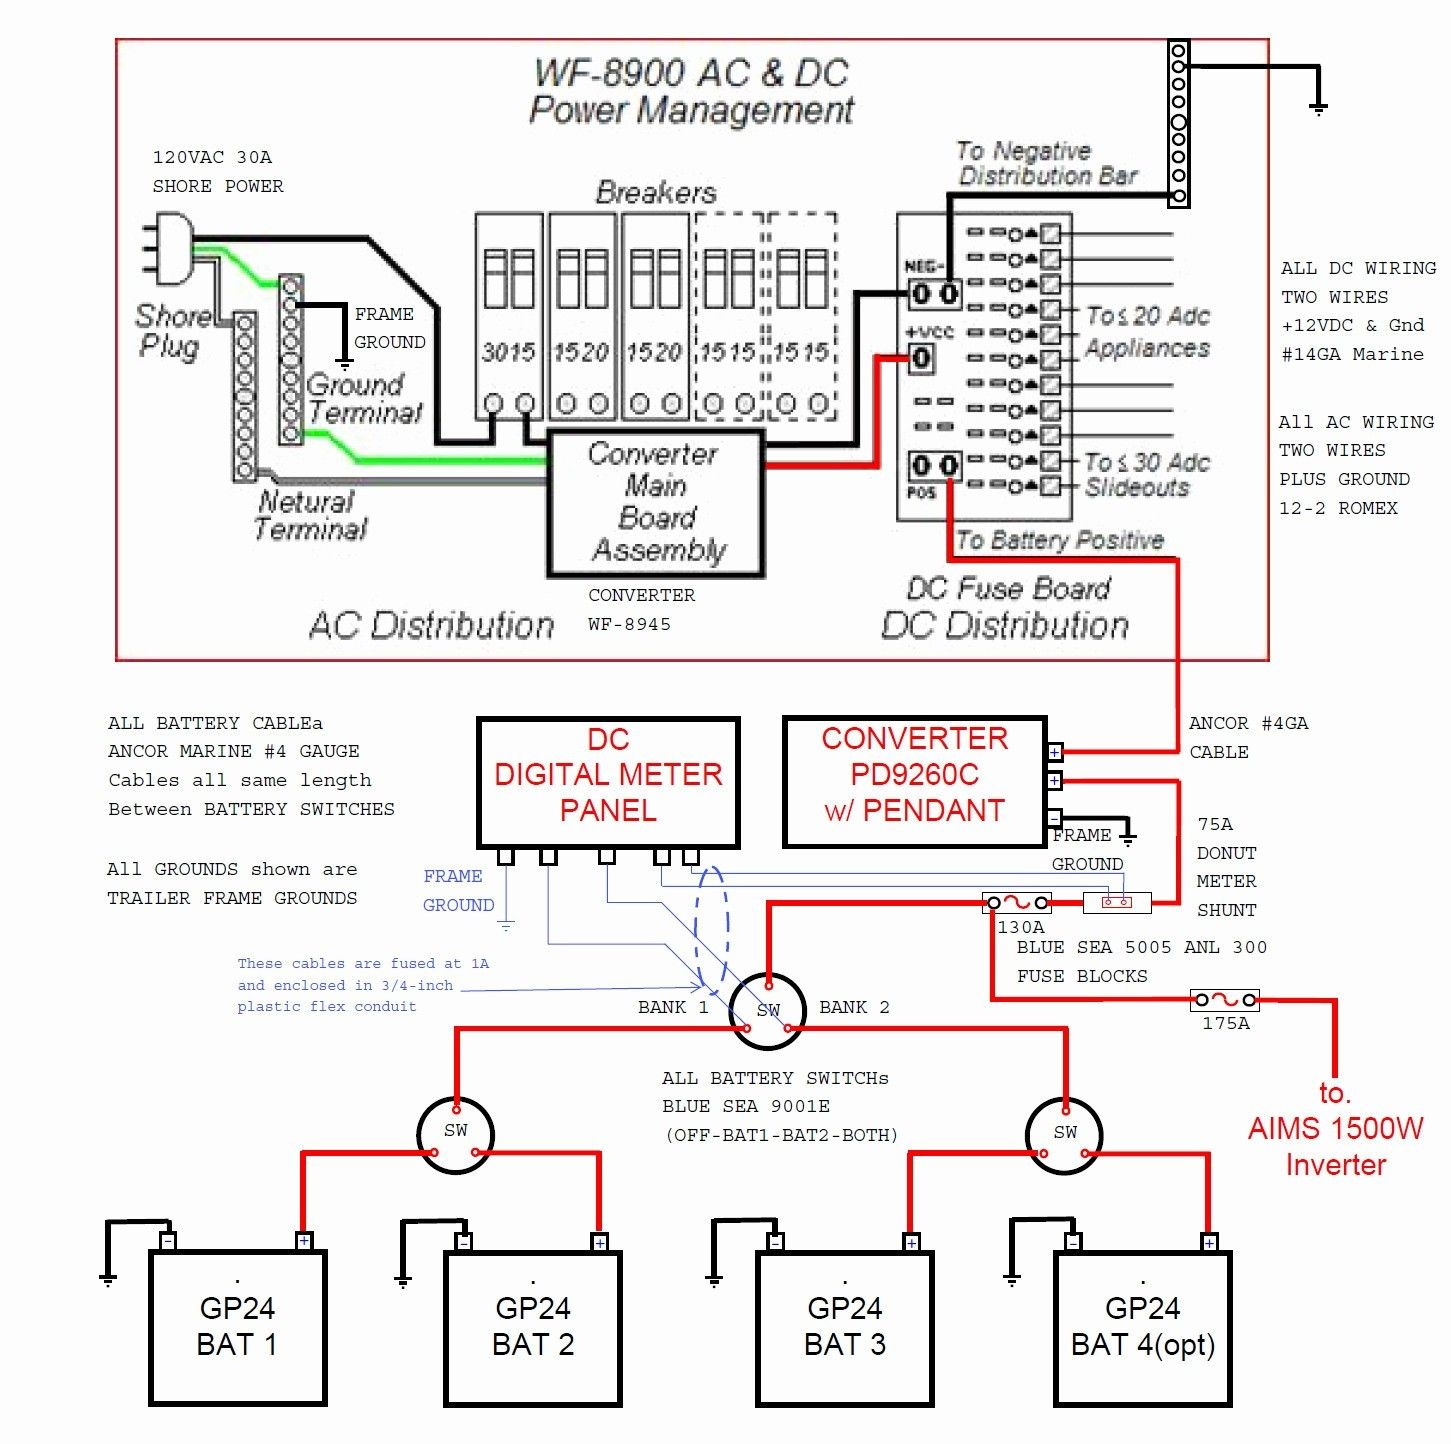 small resolution of wiring diagram also 30 generator power cord inlet box likewise power30 amp generator plug diagram wiring